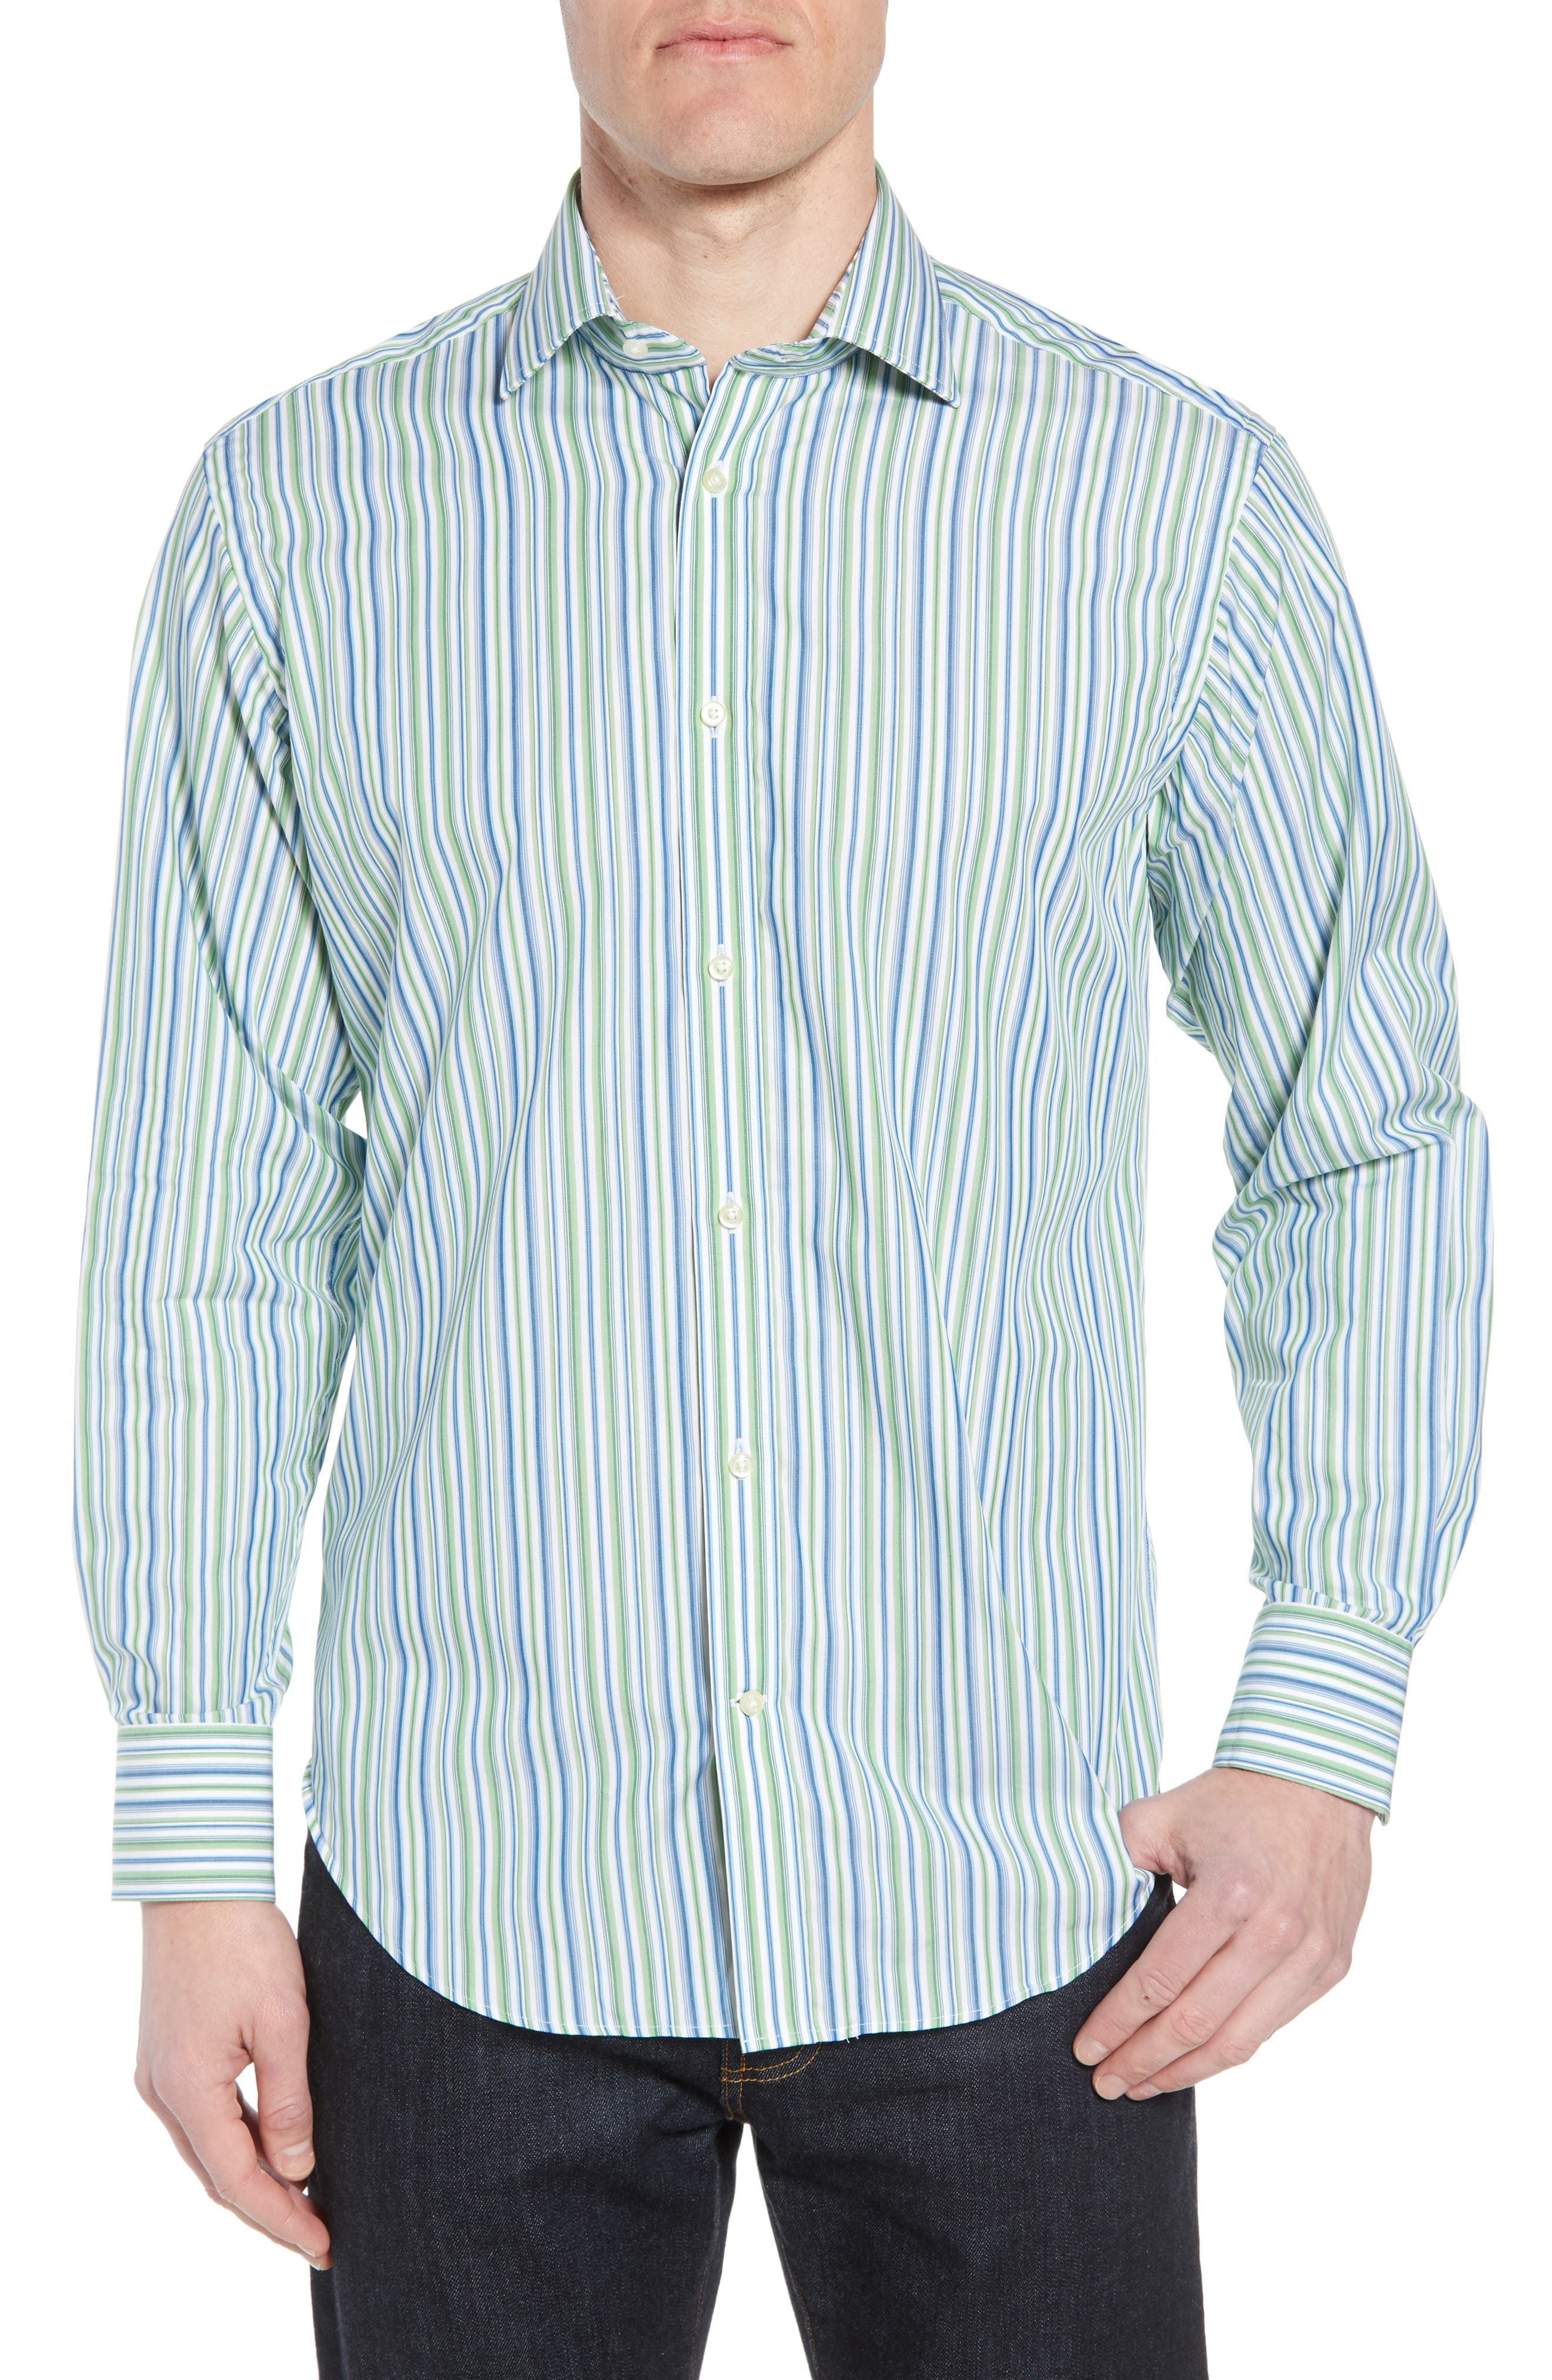 Regular Fit Stripe Sport Shirt,                             Main thumbnail 1, color,                             Green